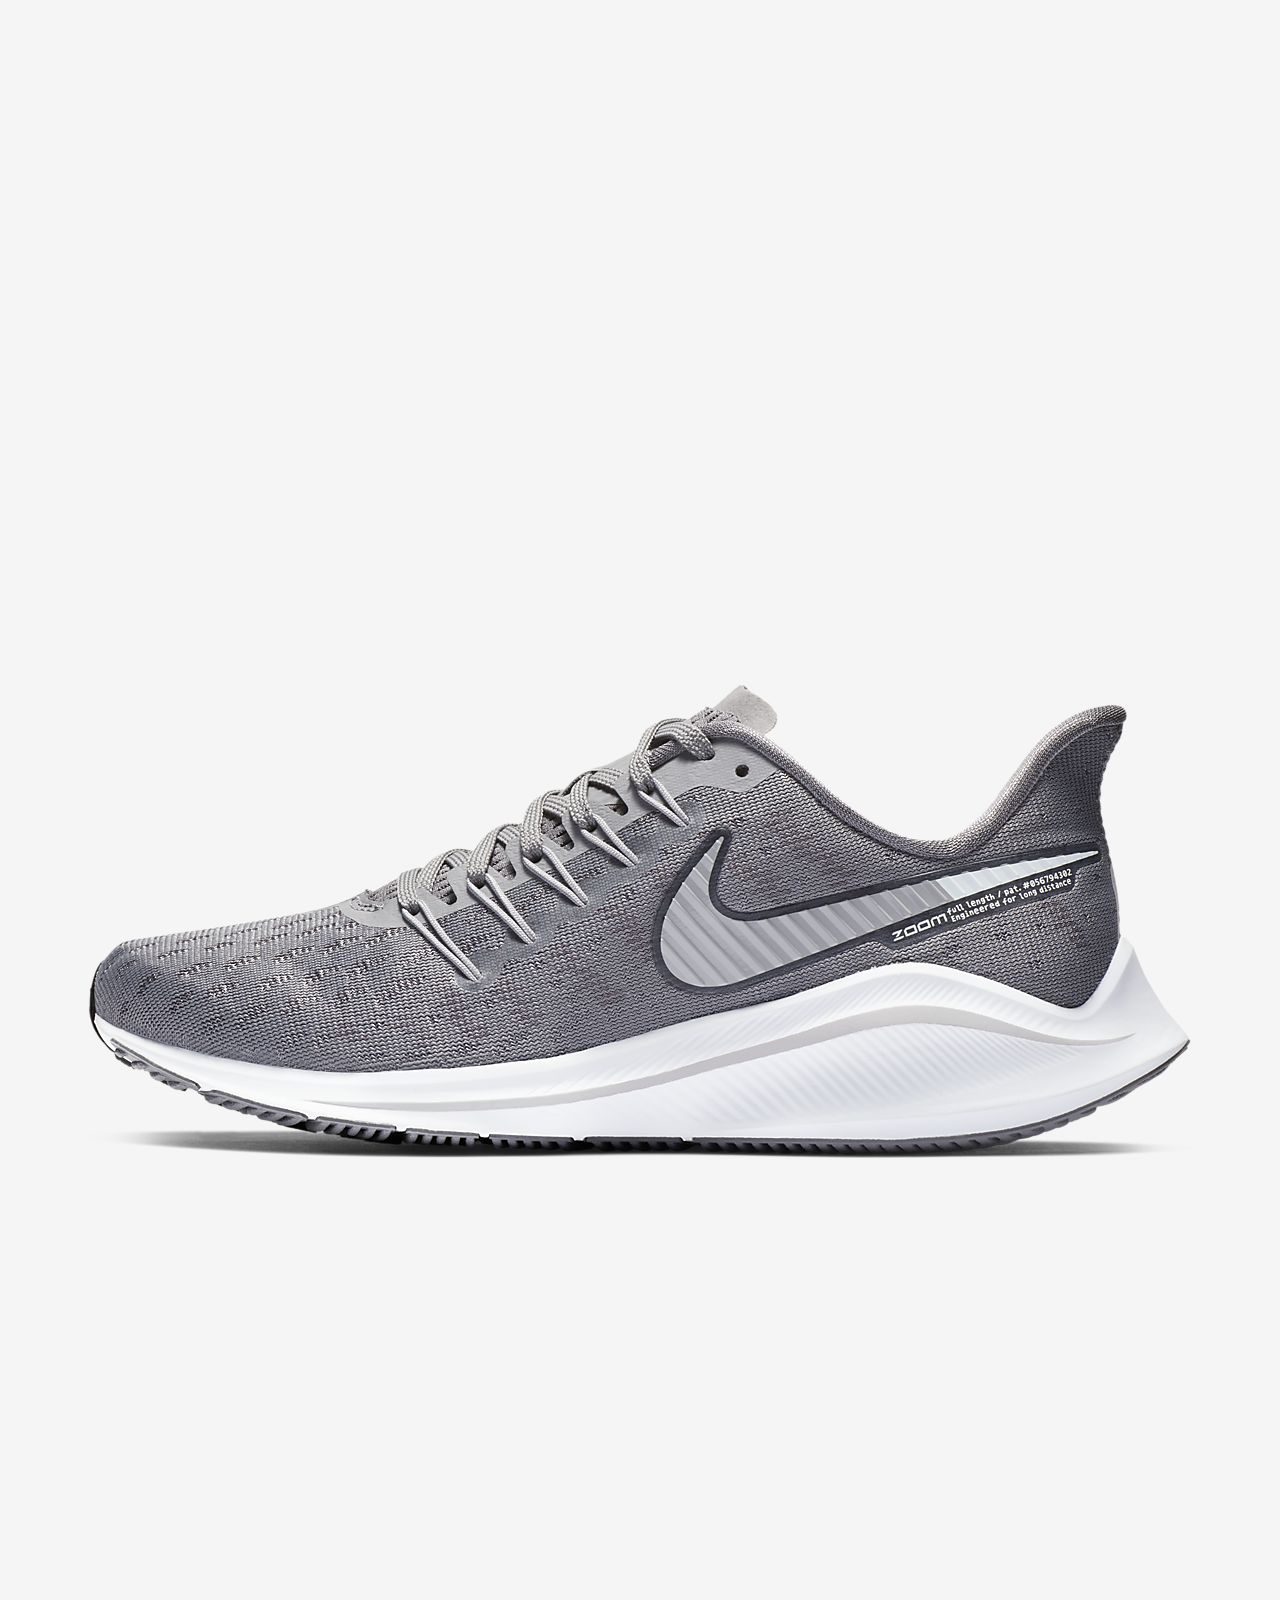 Nike Womens Air Zoom Vomero 14 Running Shoes